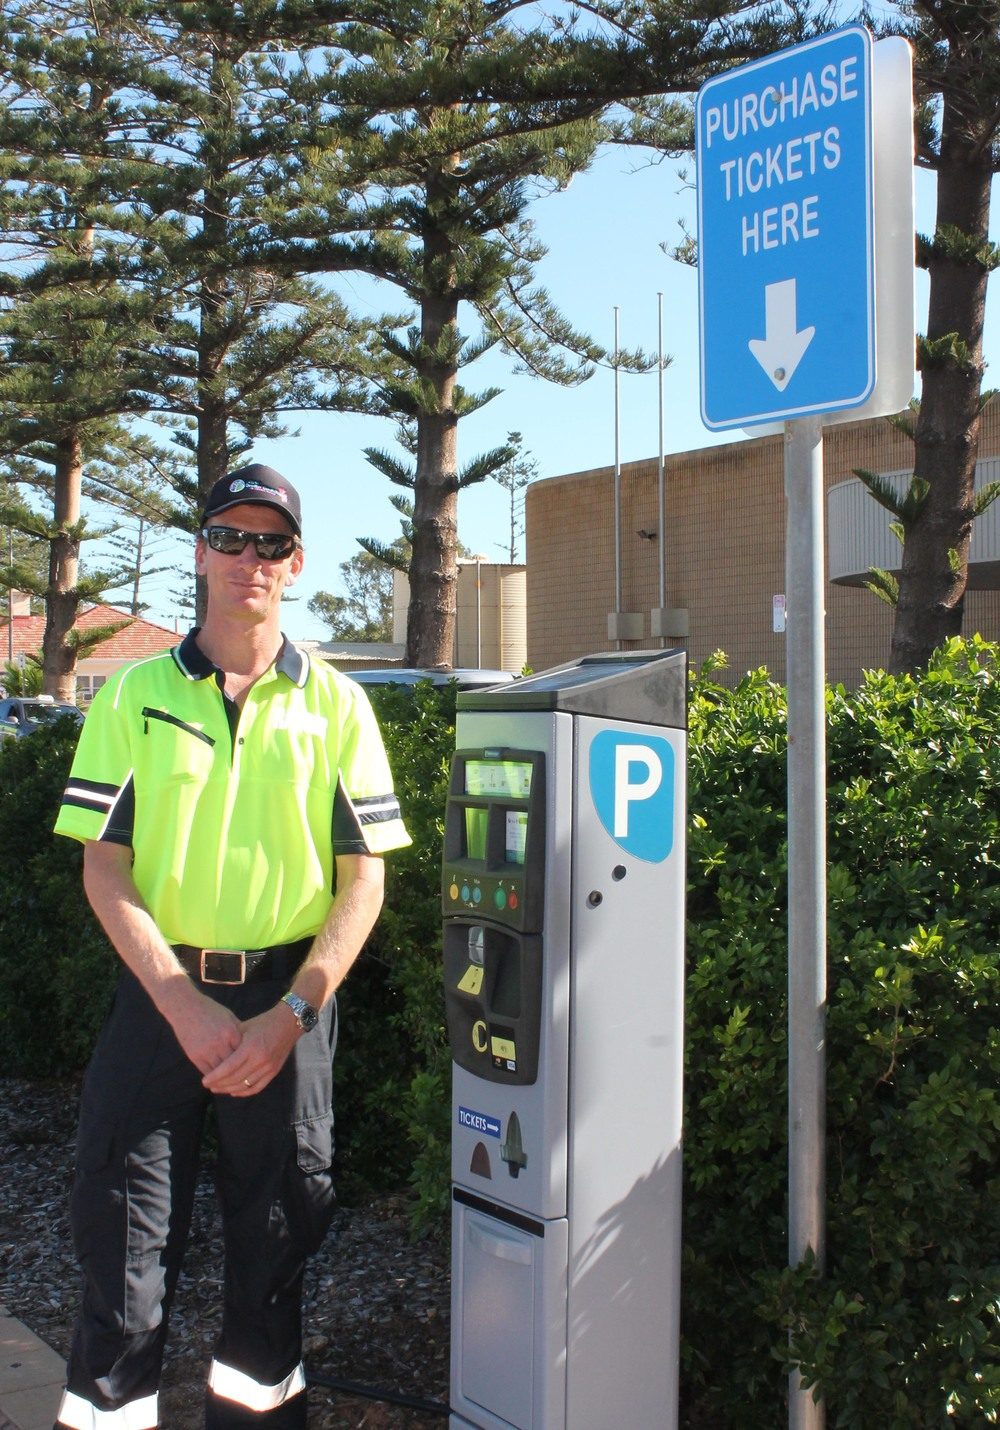 City of Greater Geraldton rangers are alerting drivers that Carpark stations have changed.